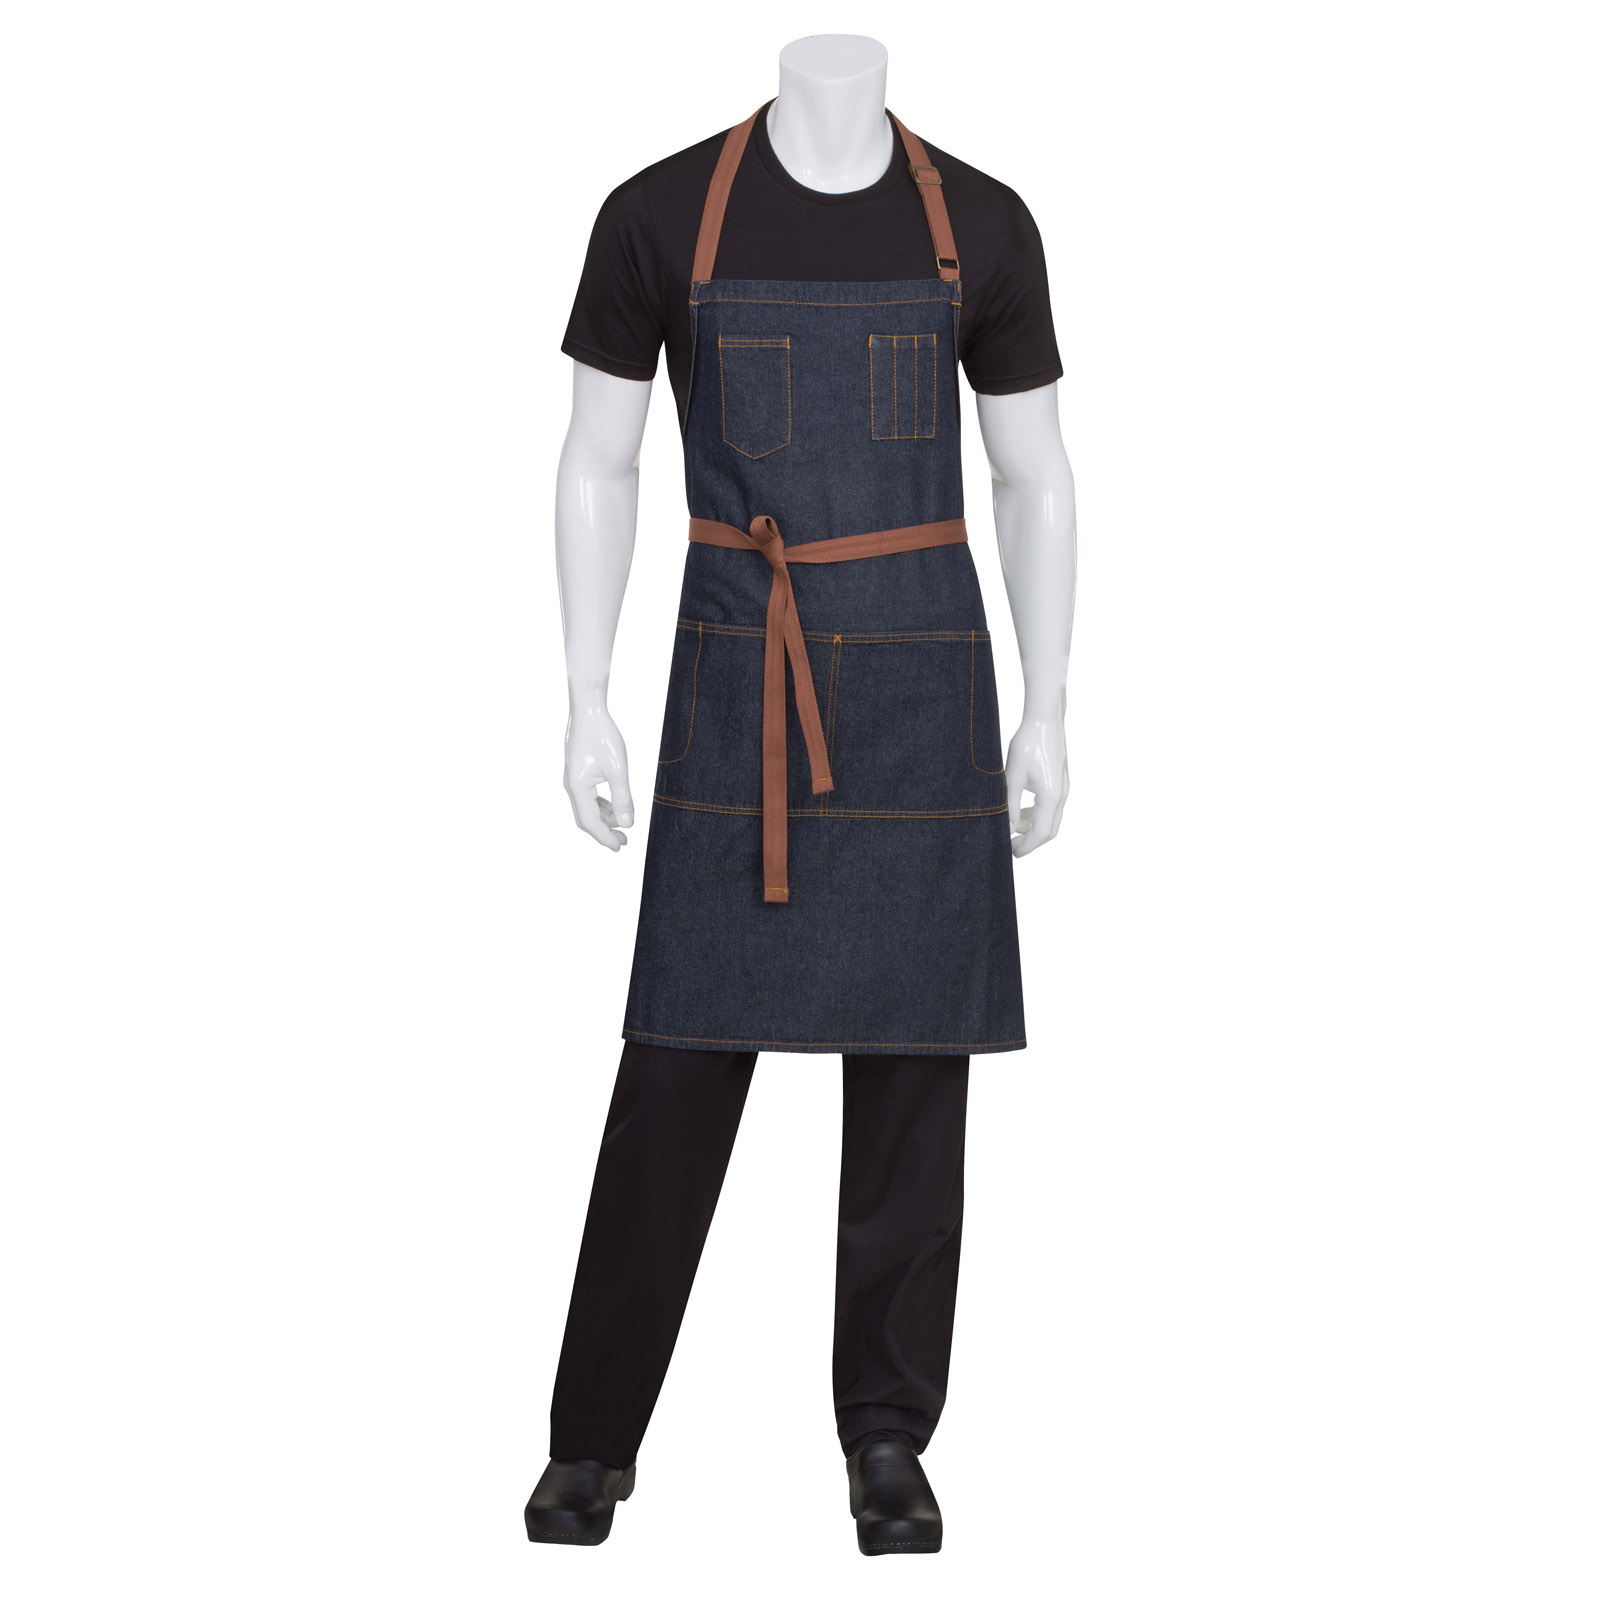 Chef Works AB035IBL0 bib apron